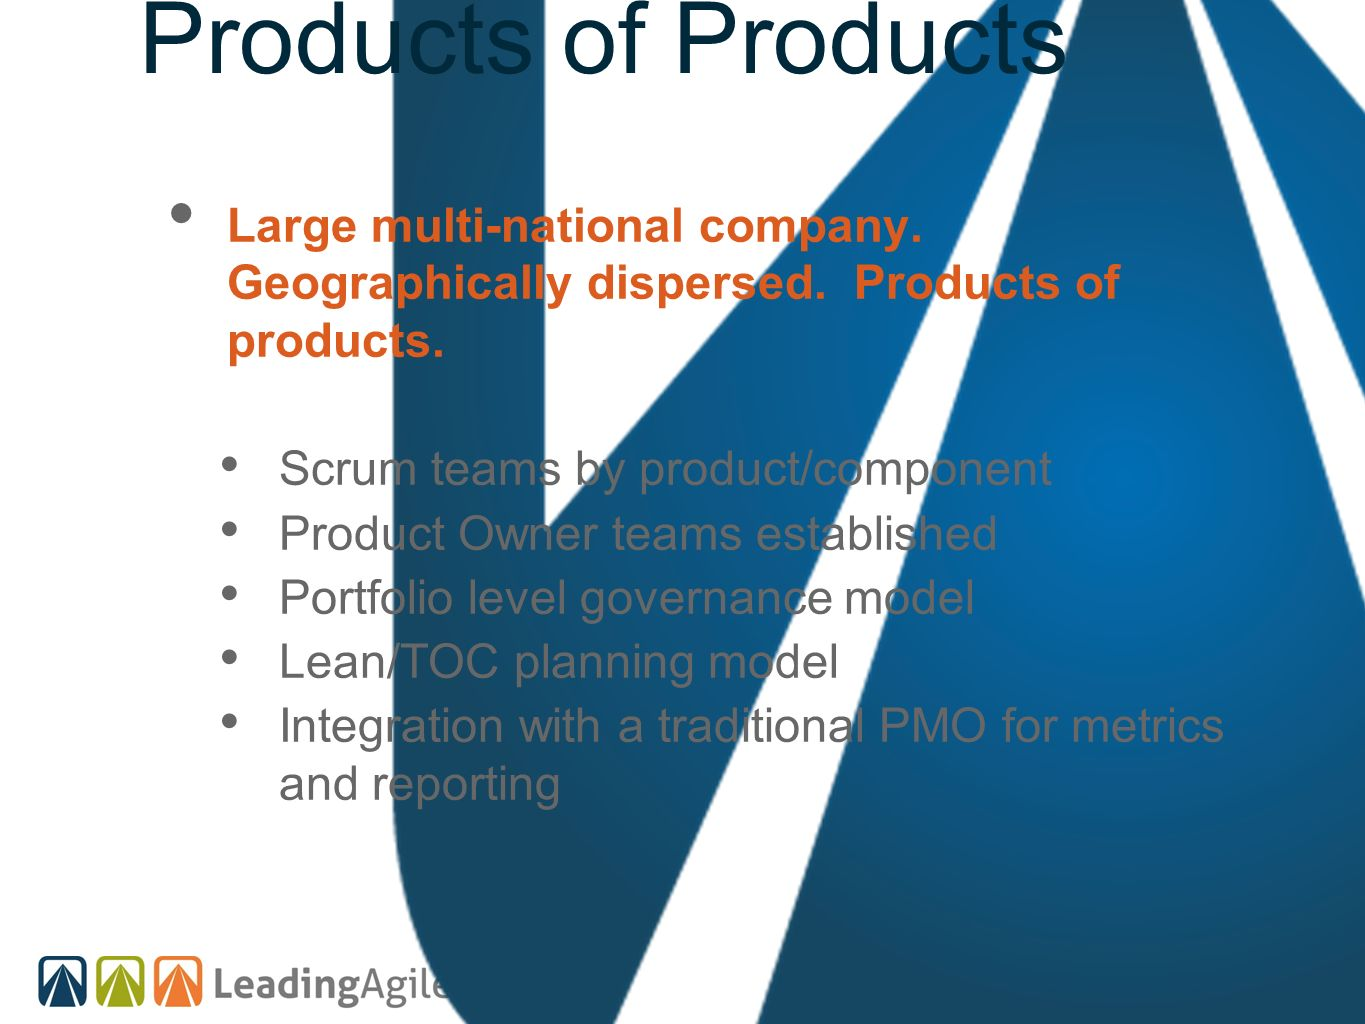 Products of Products Large multi-national company. Geographically dispersed. Products of products.